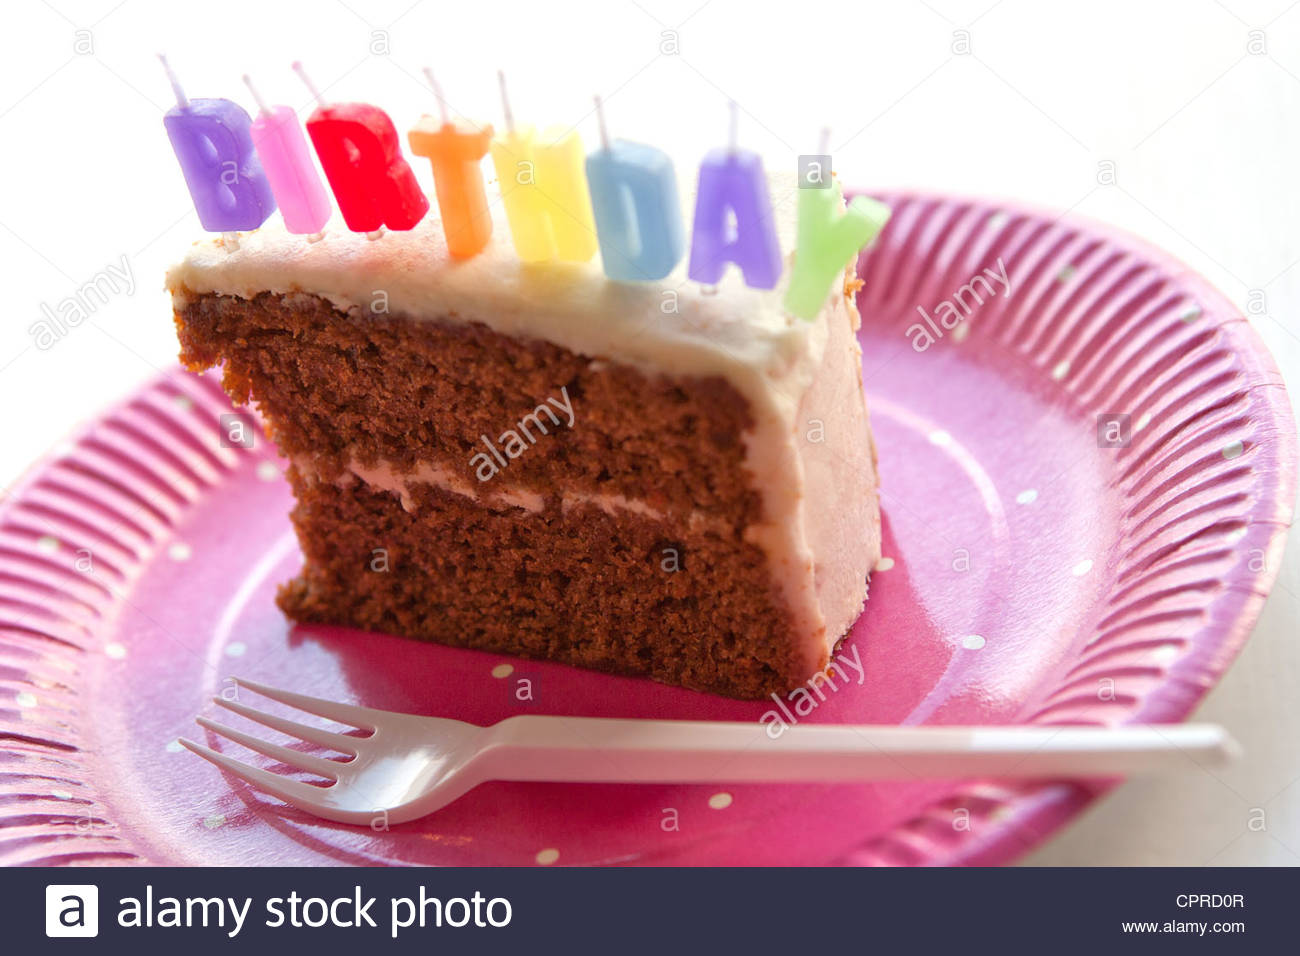 a piece of birthday cake ; a-slice-of-birthday-cake-with-birthday-candles-on-a-pink-paper-plate-CPRD0R